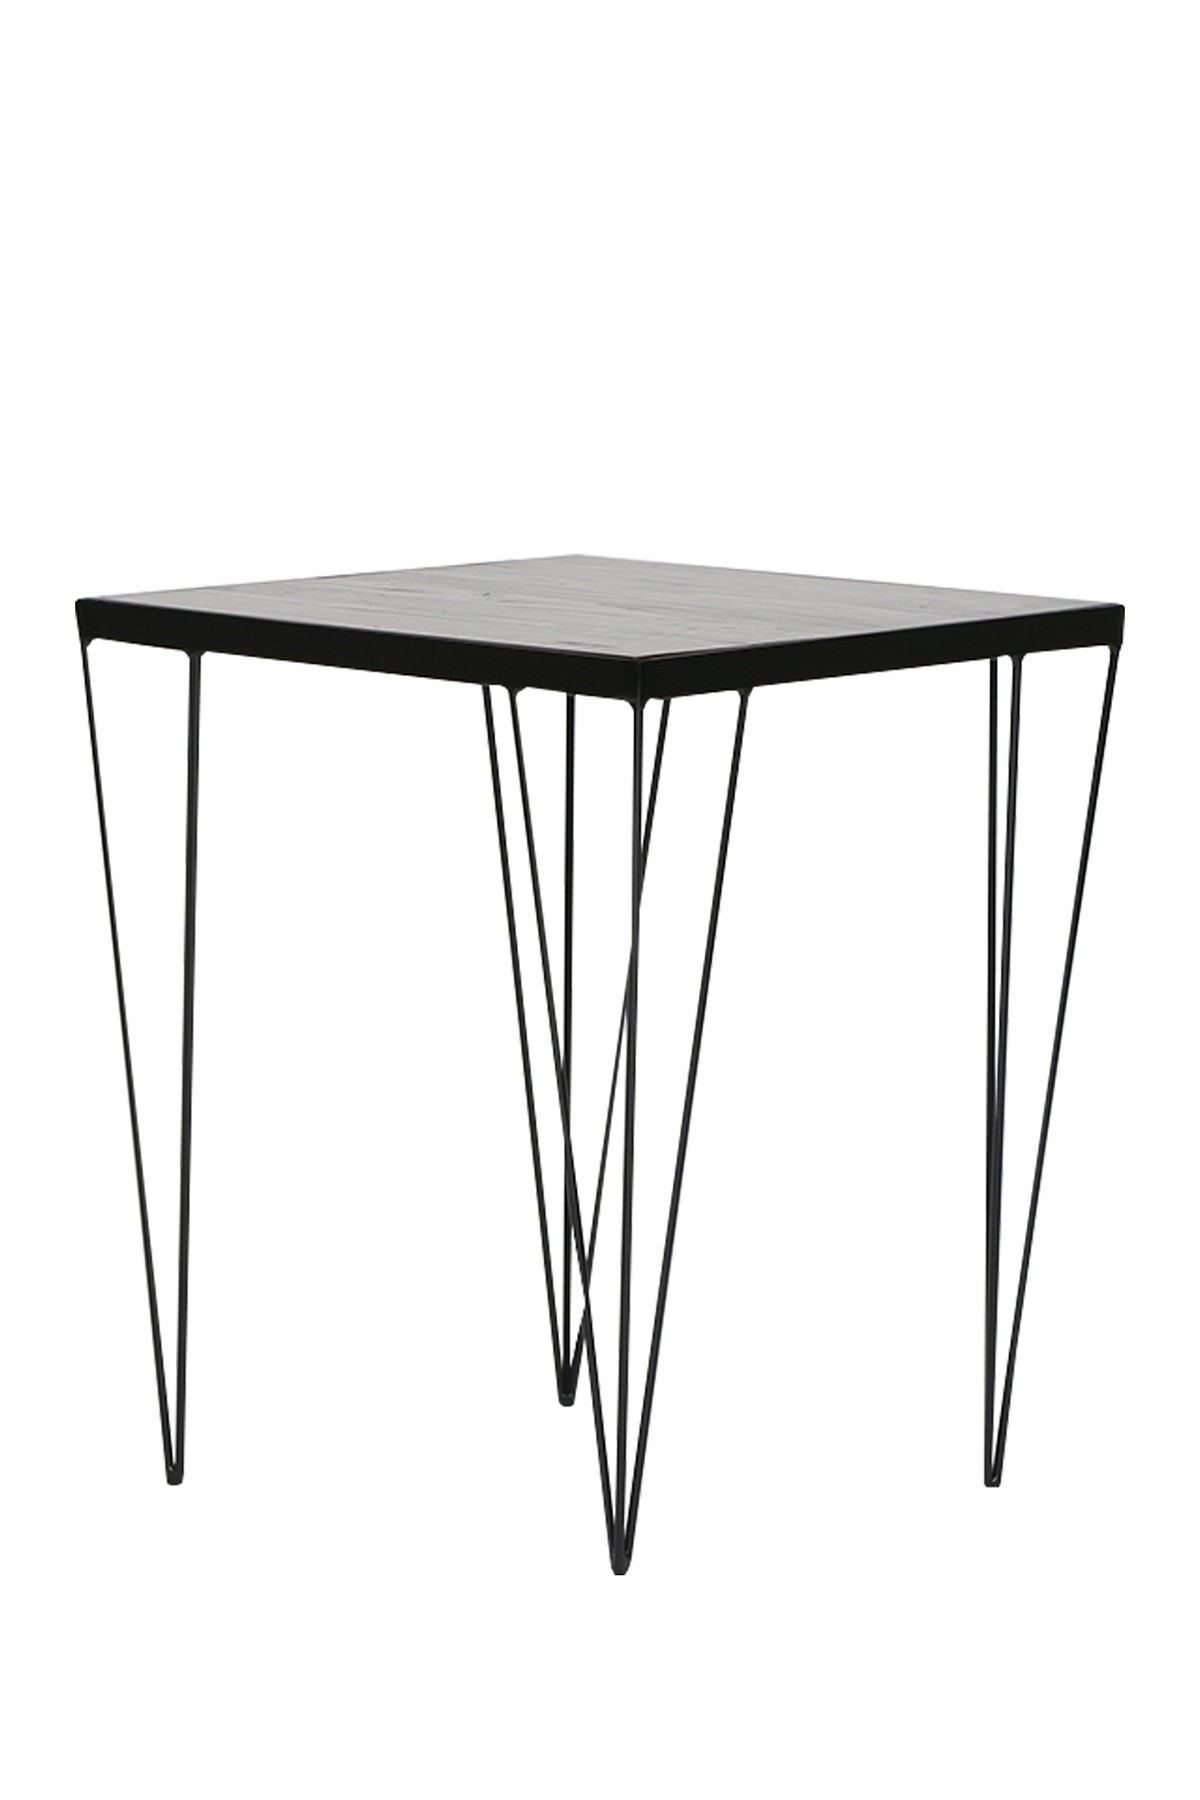 ptm natural wood hairpin accent table nordstrom rack small low end tables big lots dresser outdoor seating silver leaf coffee dining room nautical folding pier one furniture inch